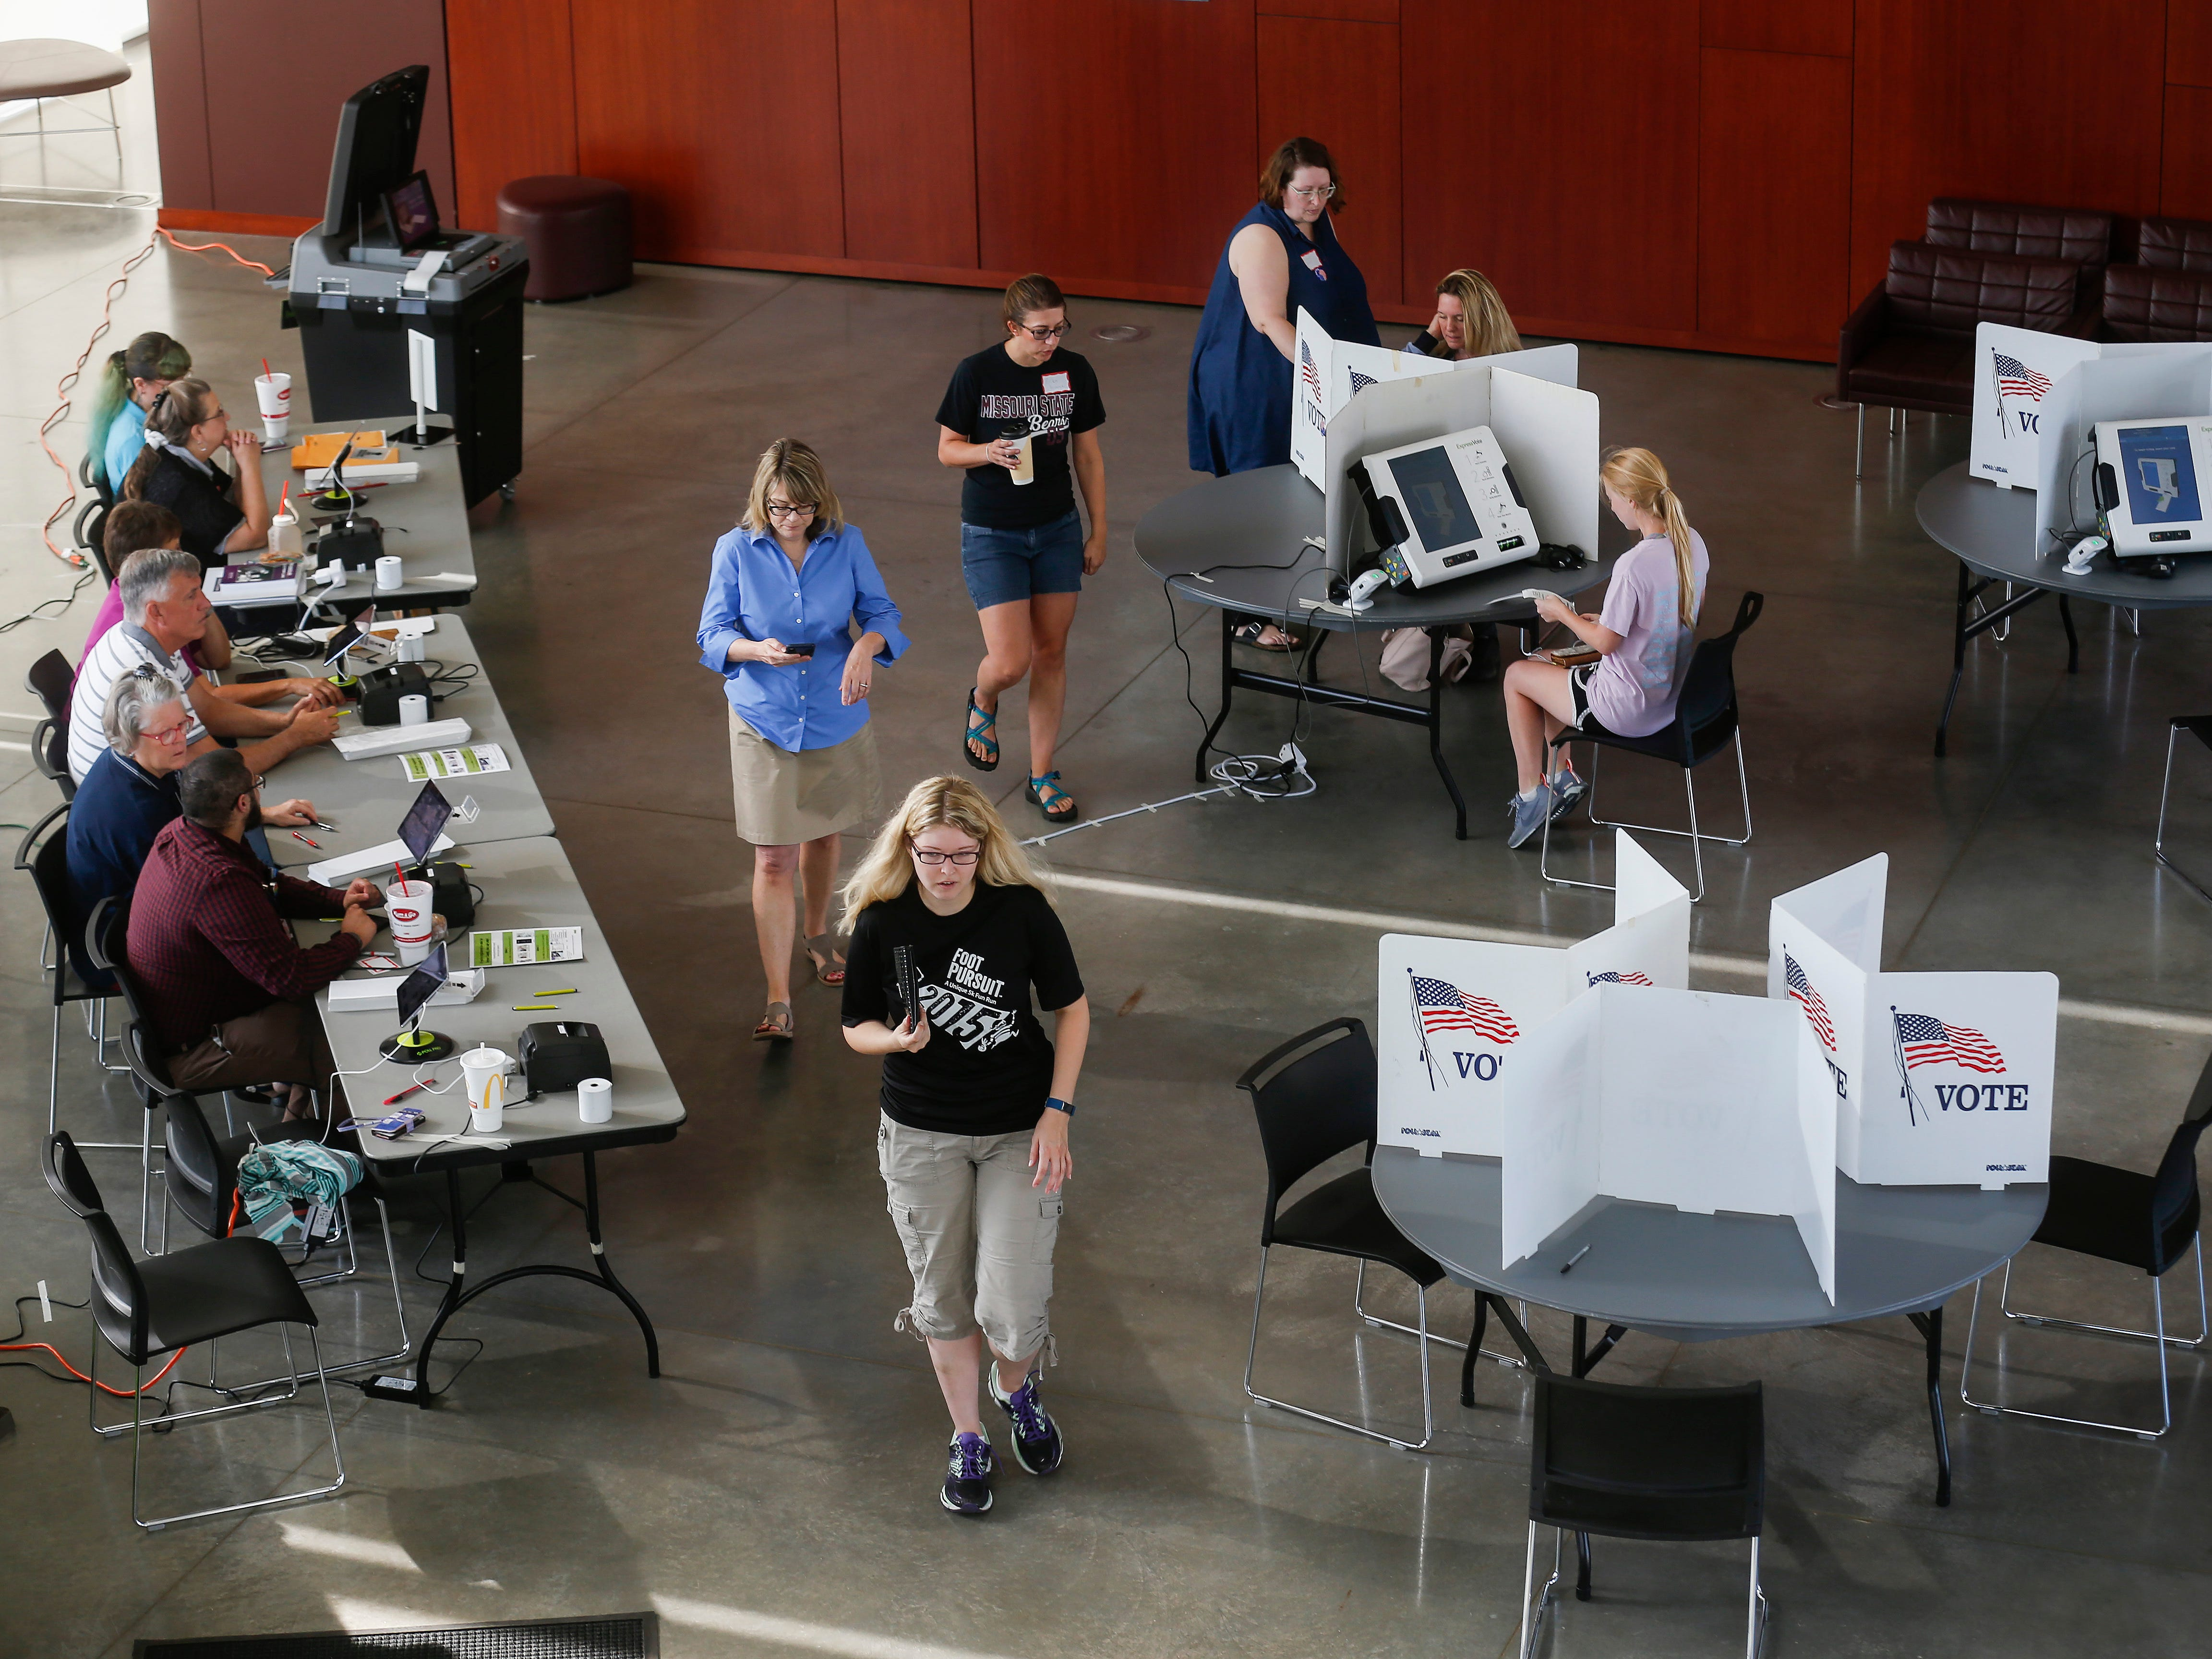 Voters cast their ballots at the Davis-Harrington Welcome Center at Missouri State University on Tuesday, Aug. 7, 2018.